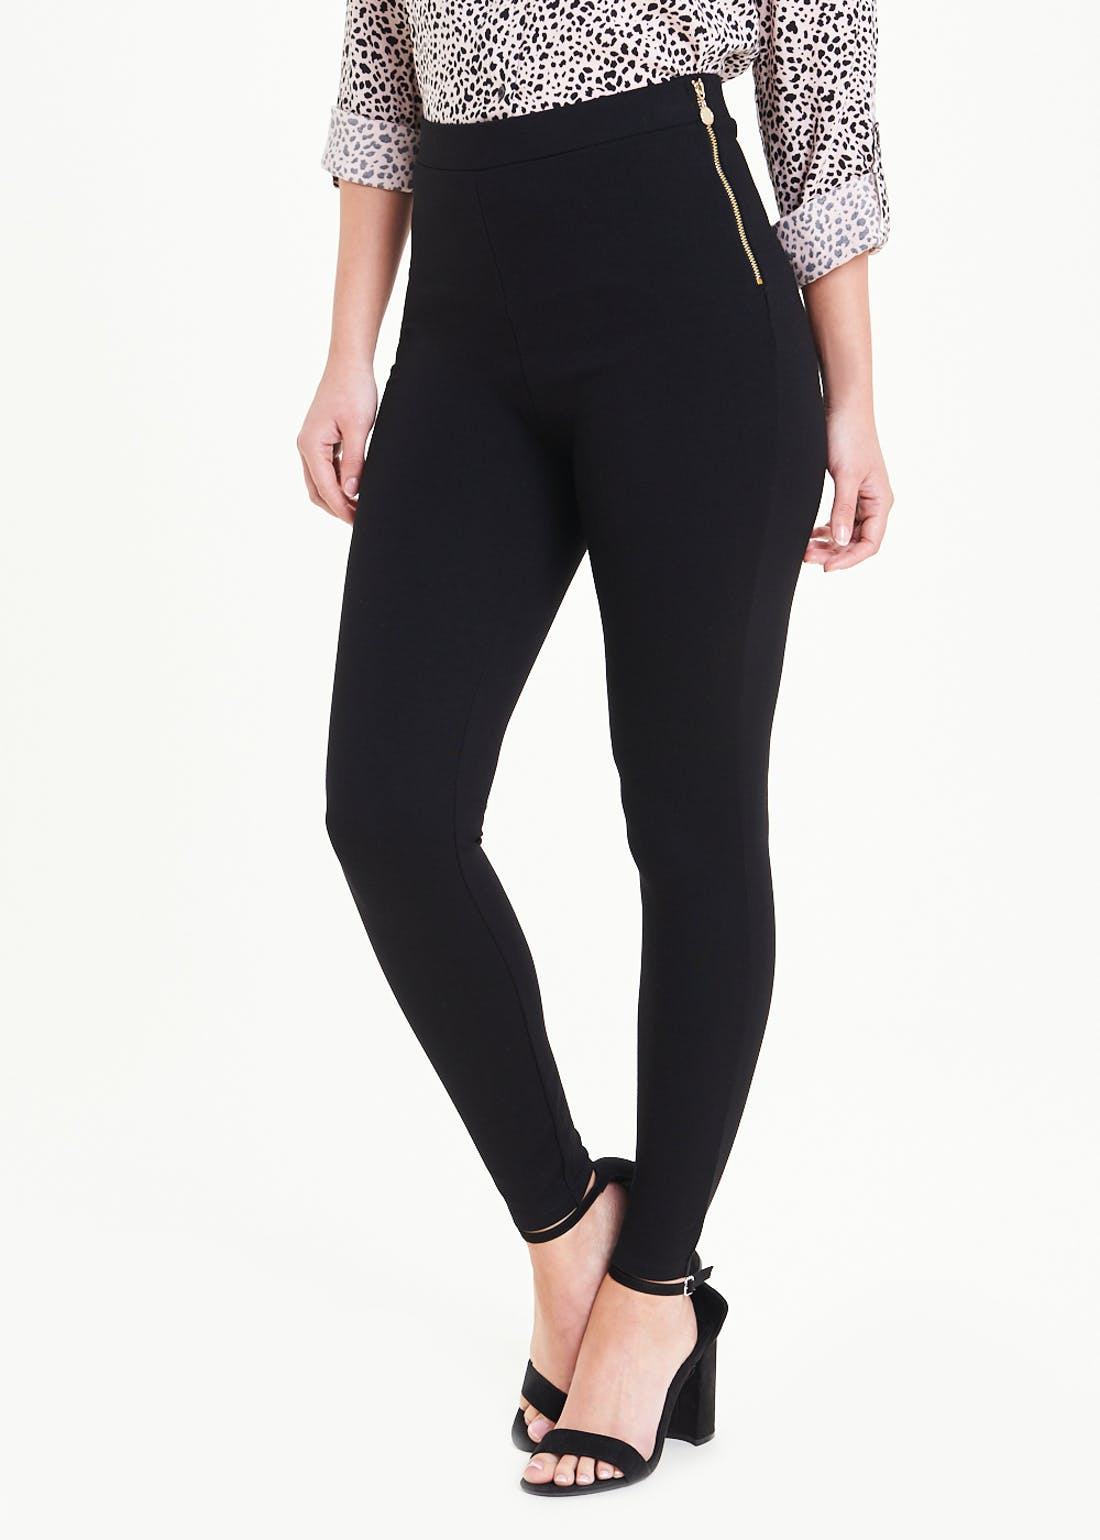 Body Shaper High Waisted Zip Leggings